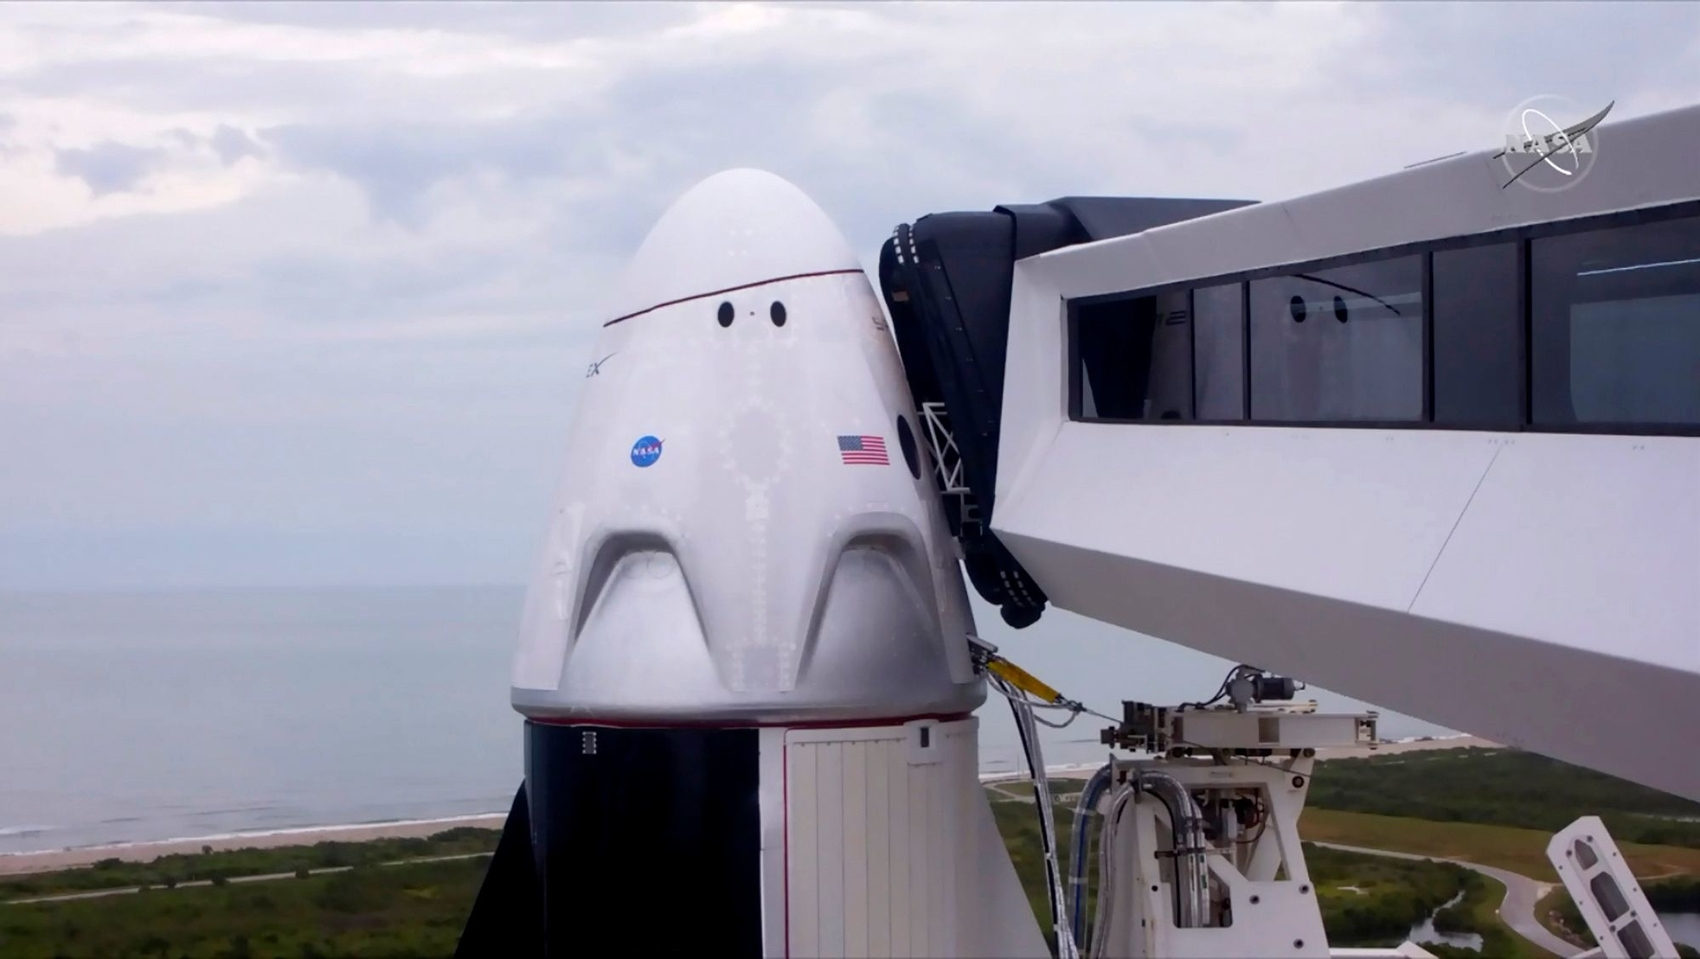 NASA's first real Crew Dragon mission has been delayed